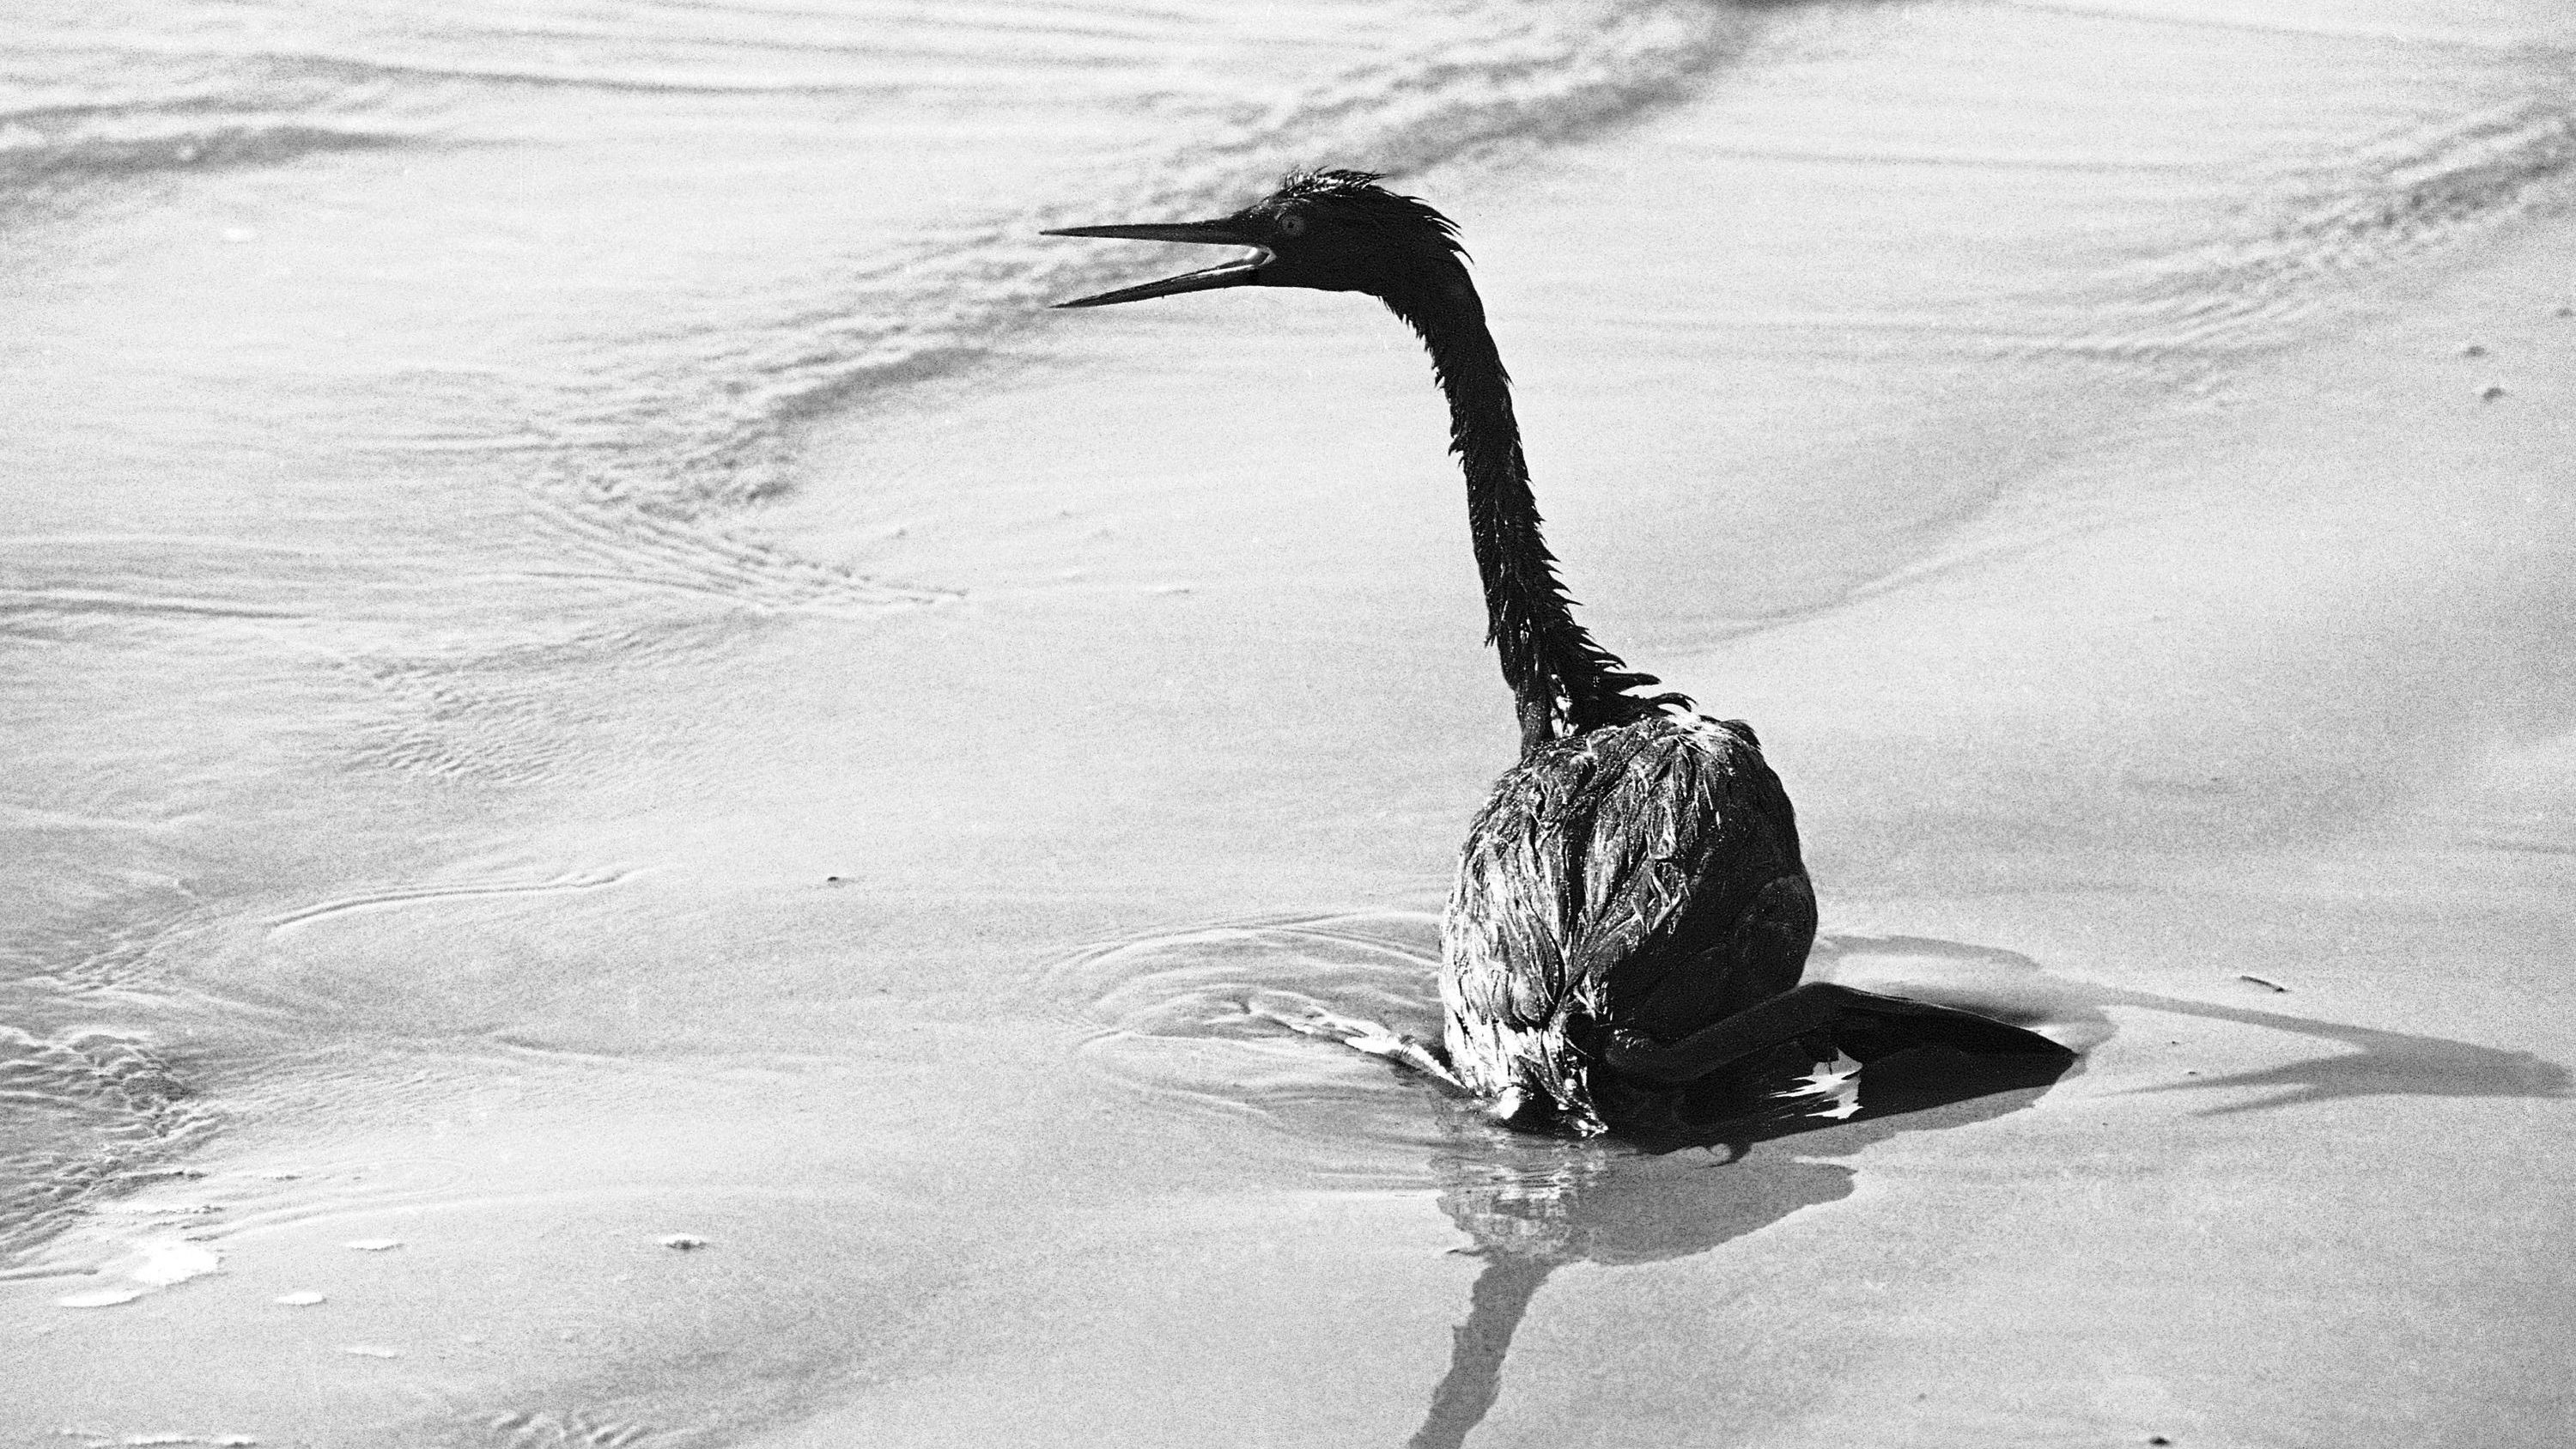 A Grebe on a beach in Santa Barbara, California, after the 1969 spill that led to the first Earth Day in 1970.